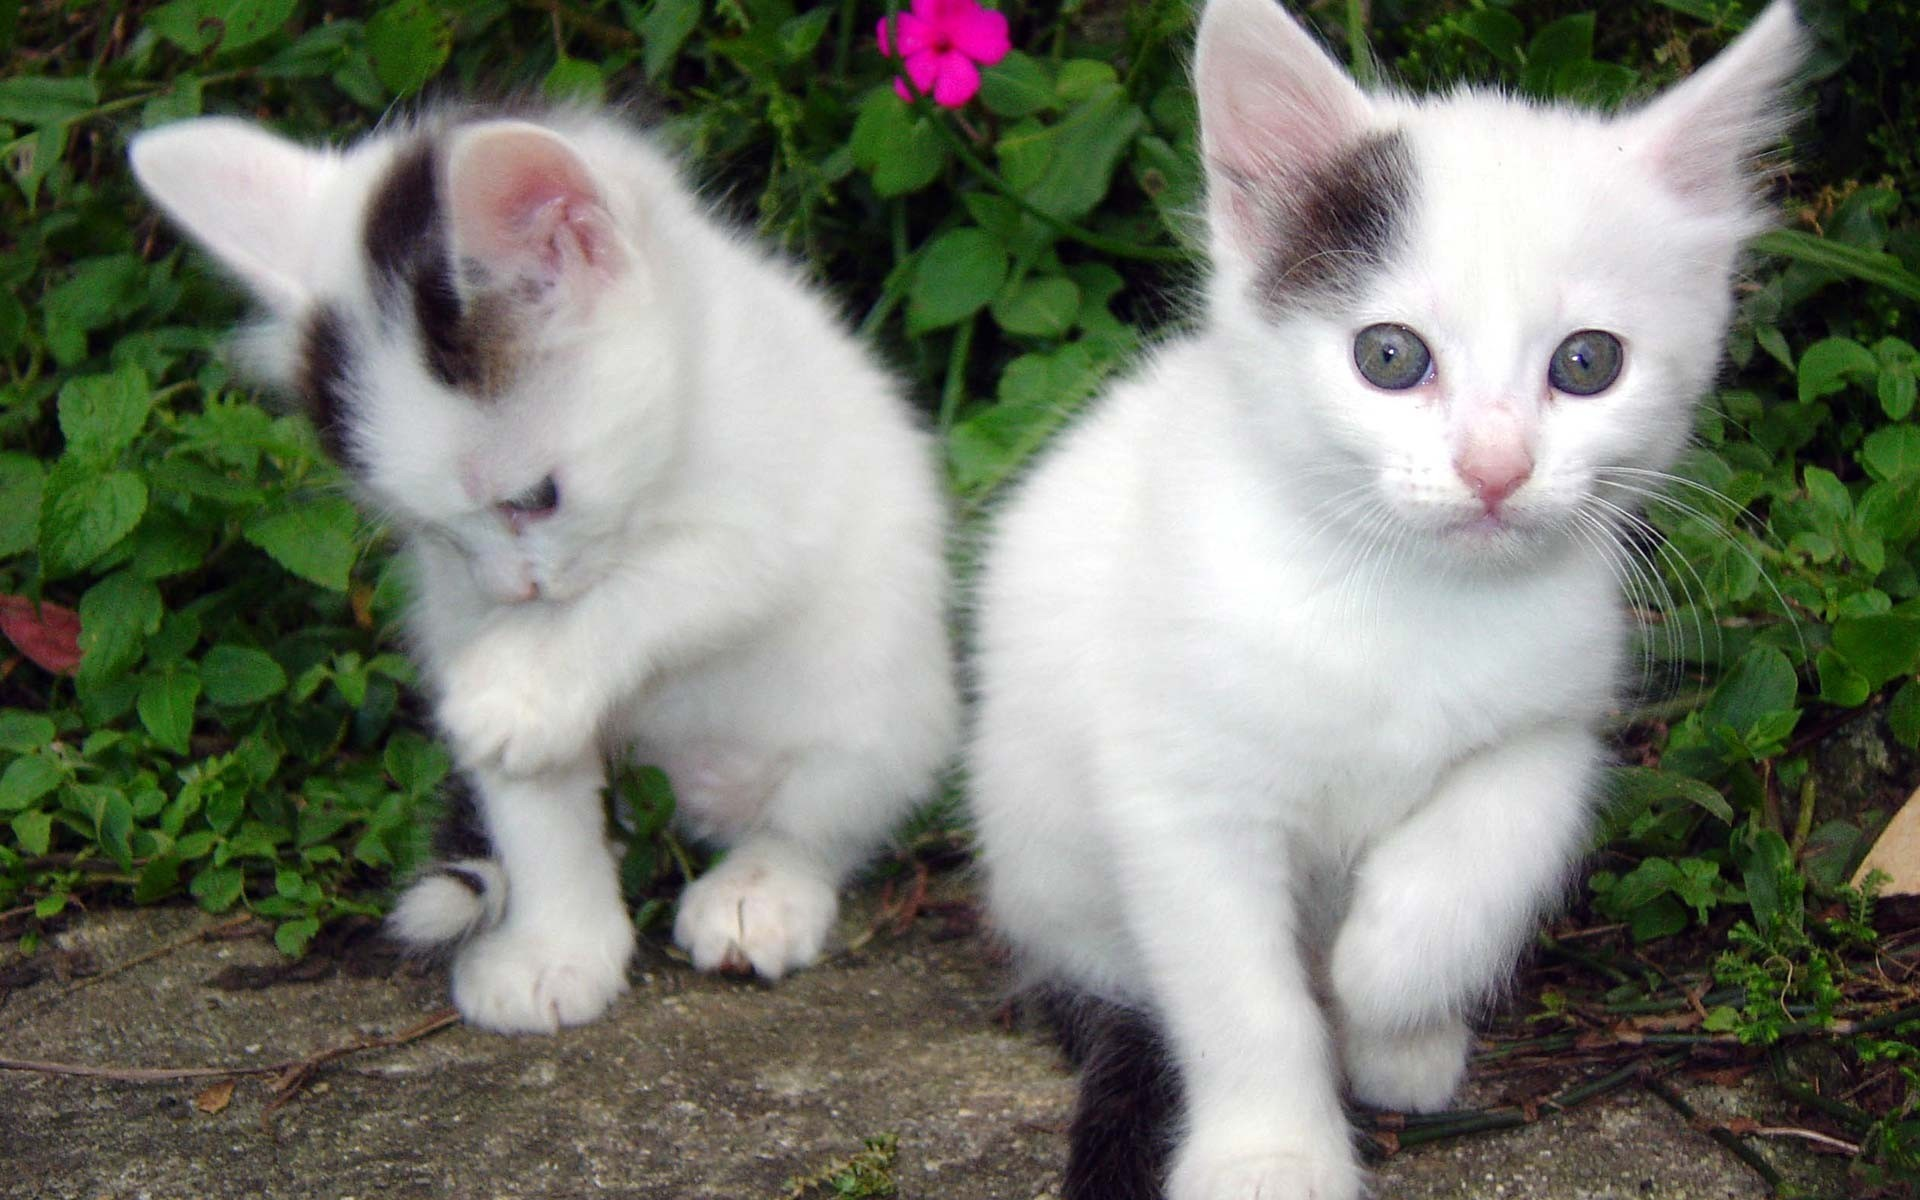 Res: 1920x1200, Cute White Baby Cats Wallpaper.jpg?m=1390822827